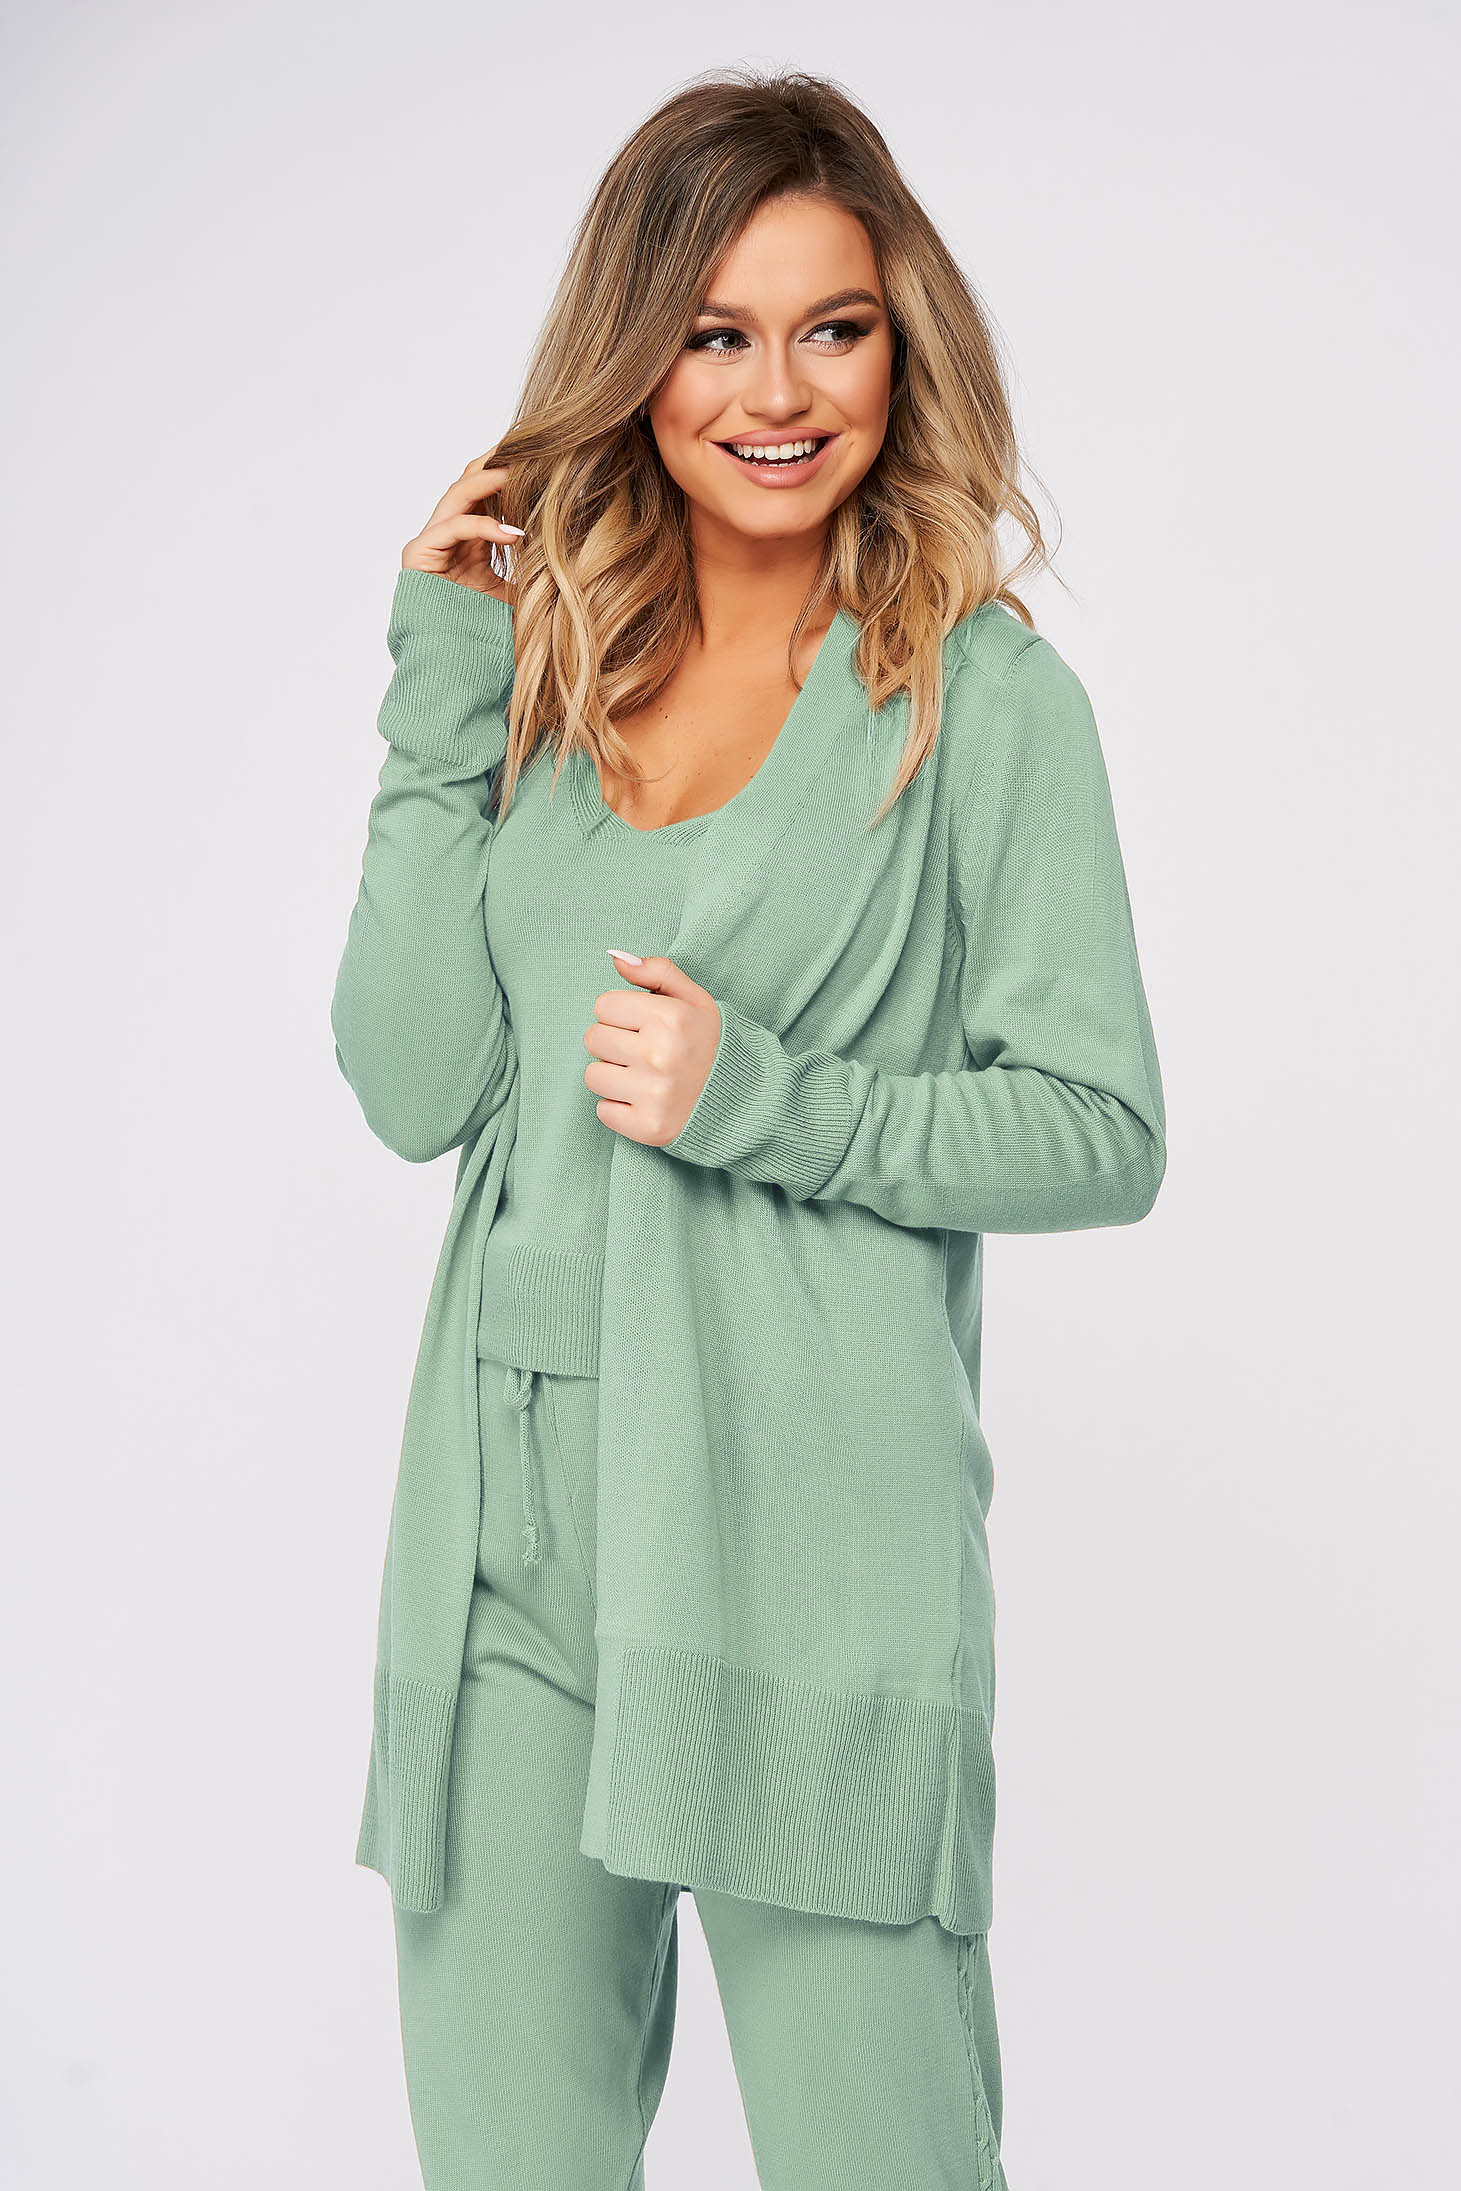 Casual knitted fabric lightgreen sport 2 pieces women`s sweater